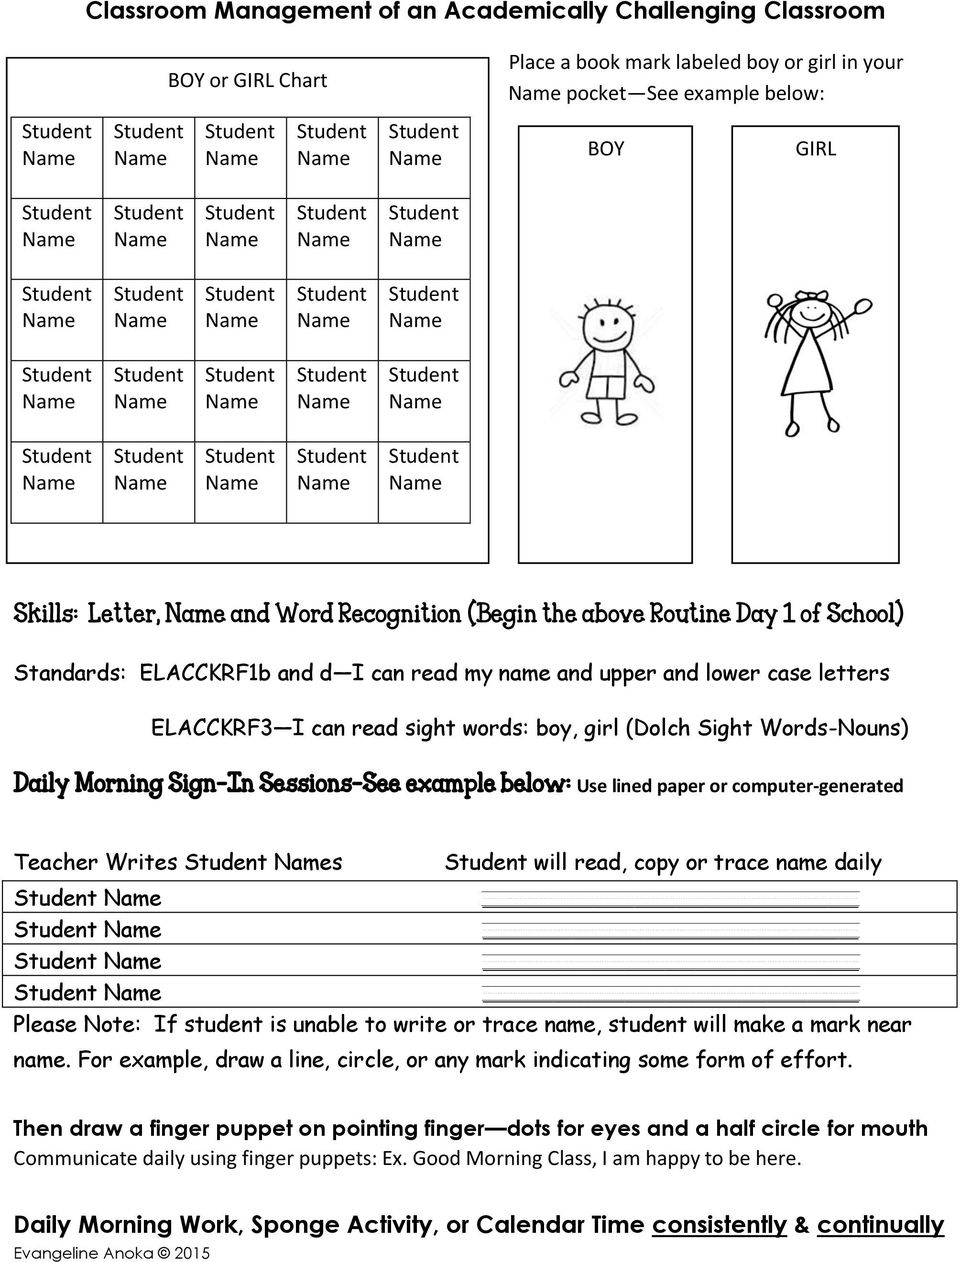 Morning Sign-In Sessions See example below: Use lined paper or computer-generated Teacher Writes s will read, copy or trace name daily Please Note: If student is unable to write or trace name,